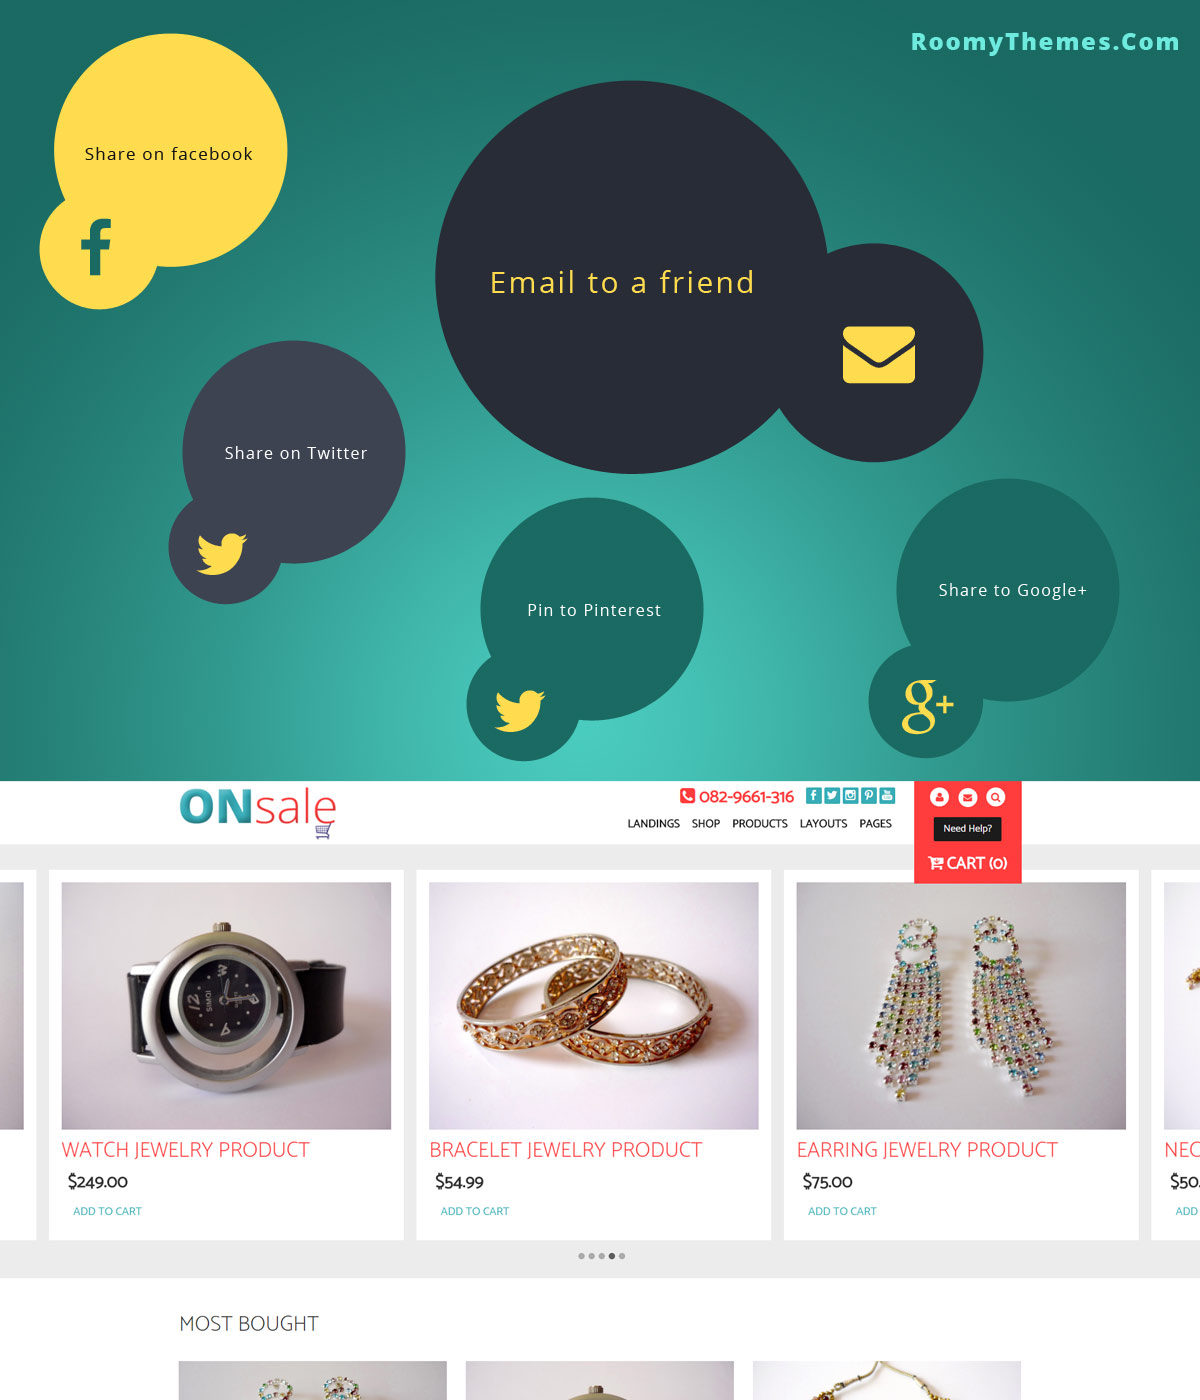 free weebly themes and templates - onsale weebly e commerce and weebly store template roomy